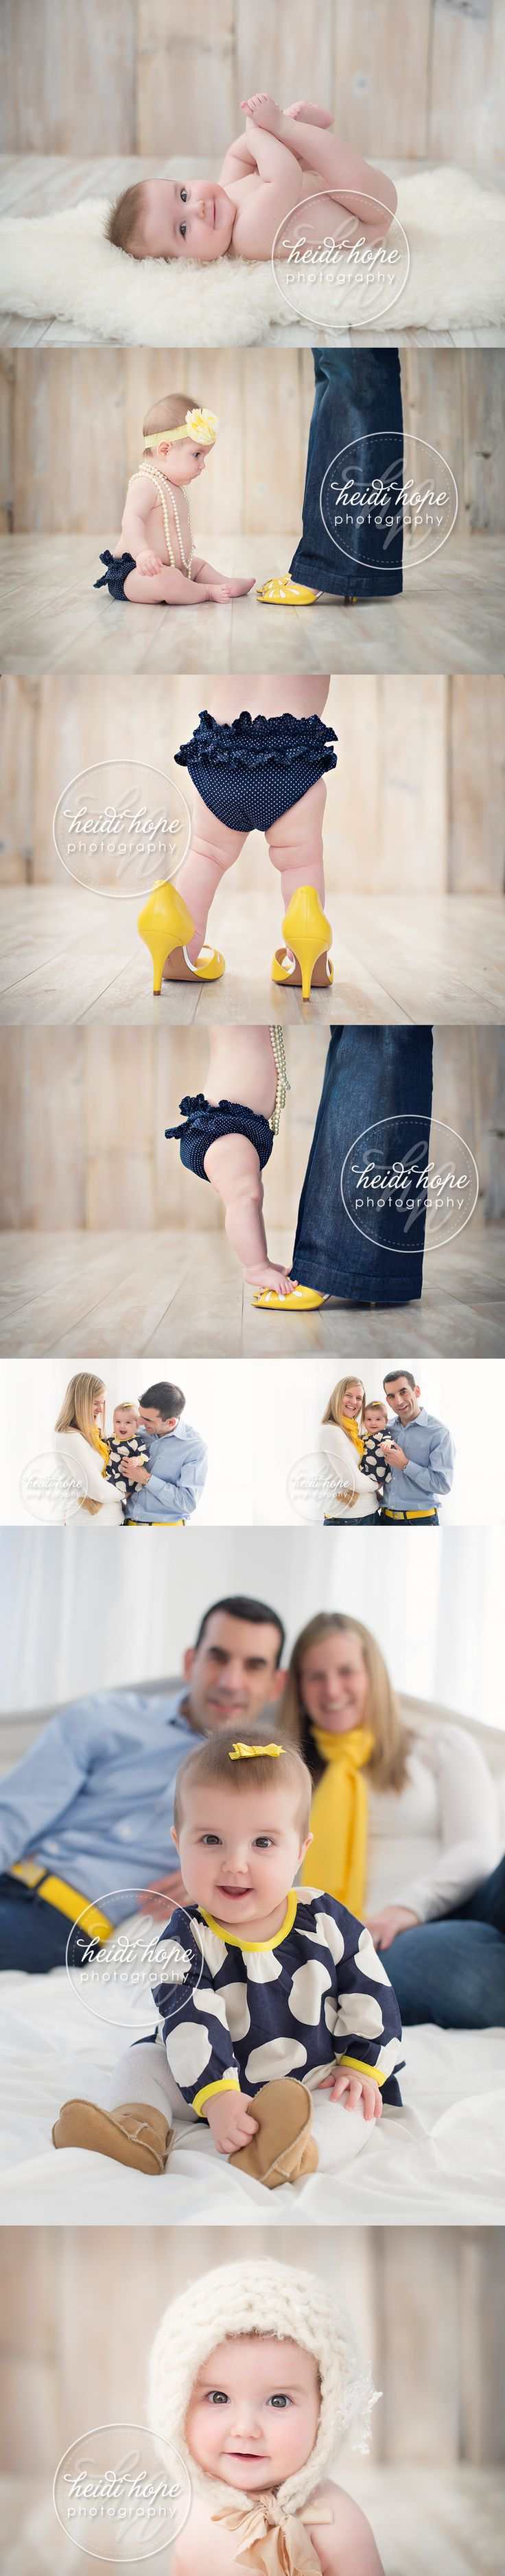 Adorable ideas for photo shoot w/baby girl- just need to add her big bro :) Really love the color combo too!